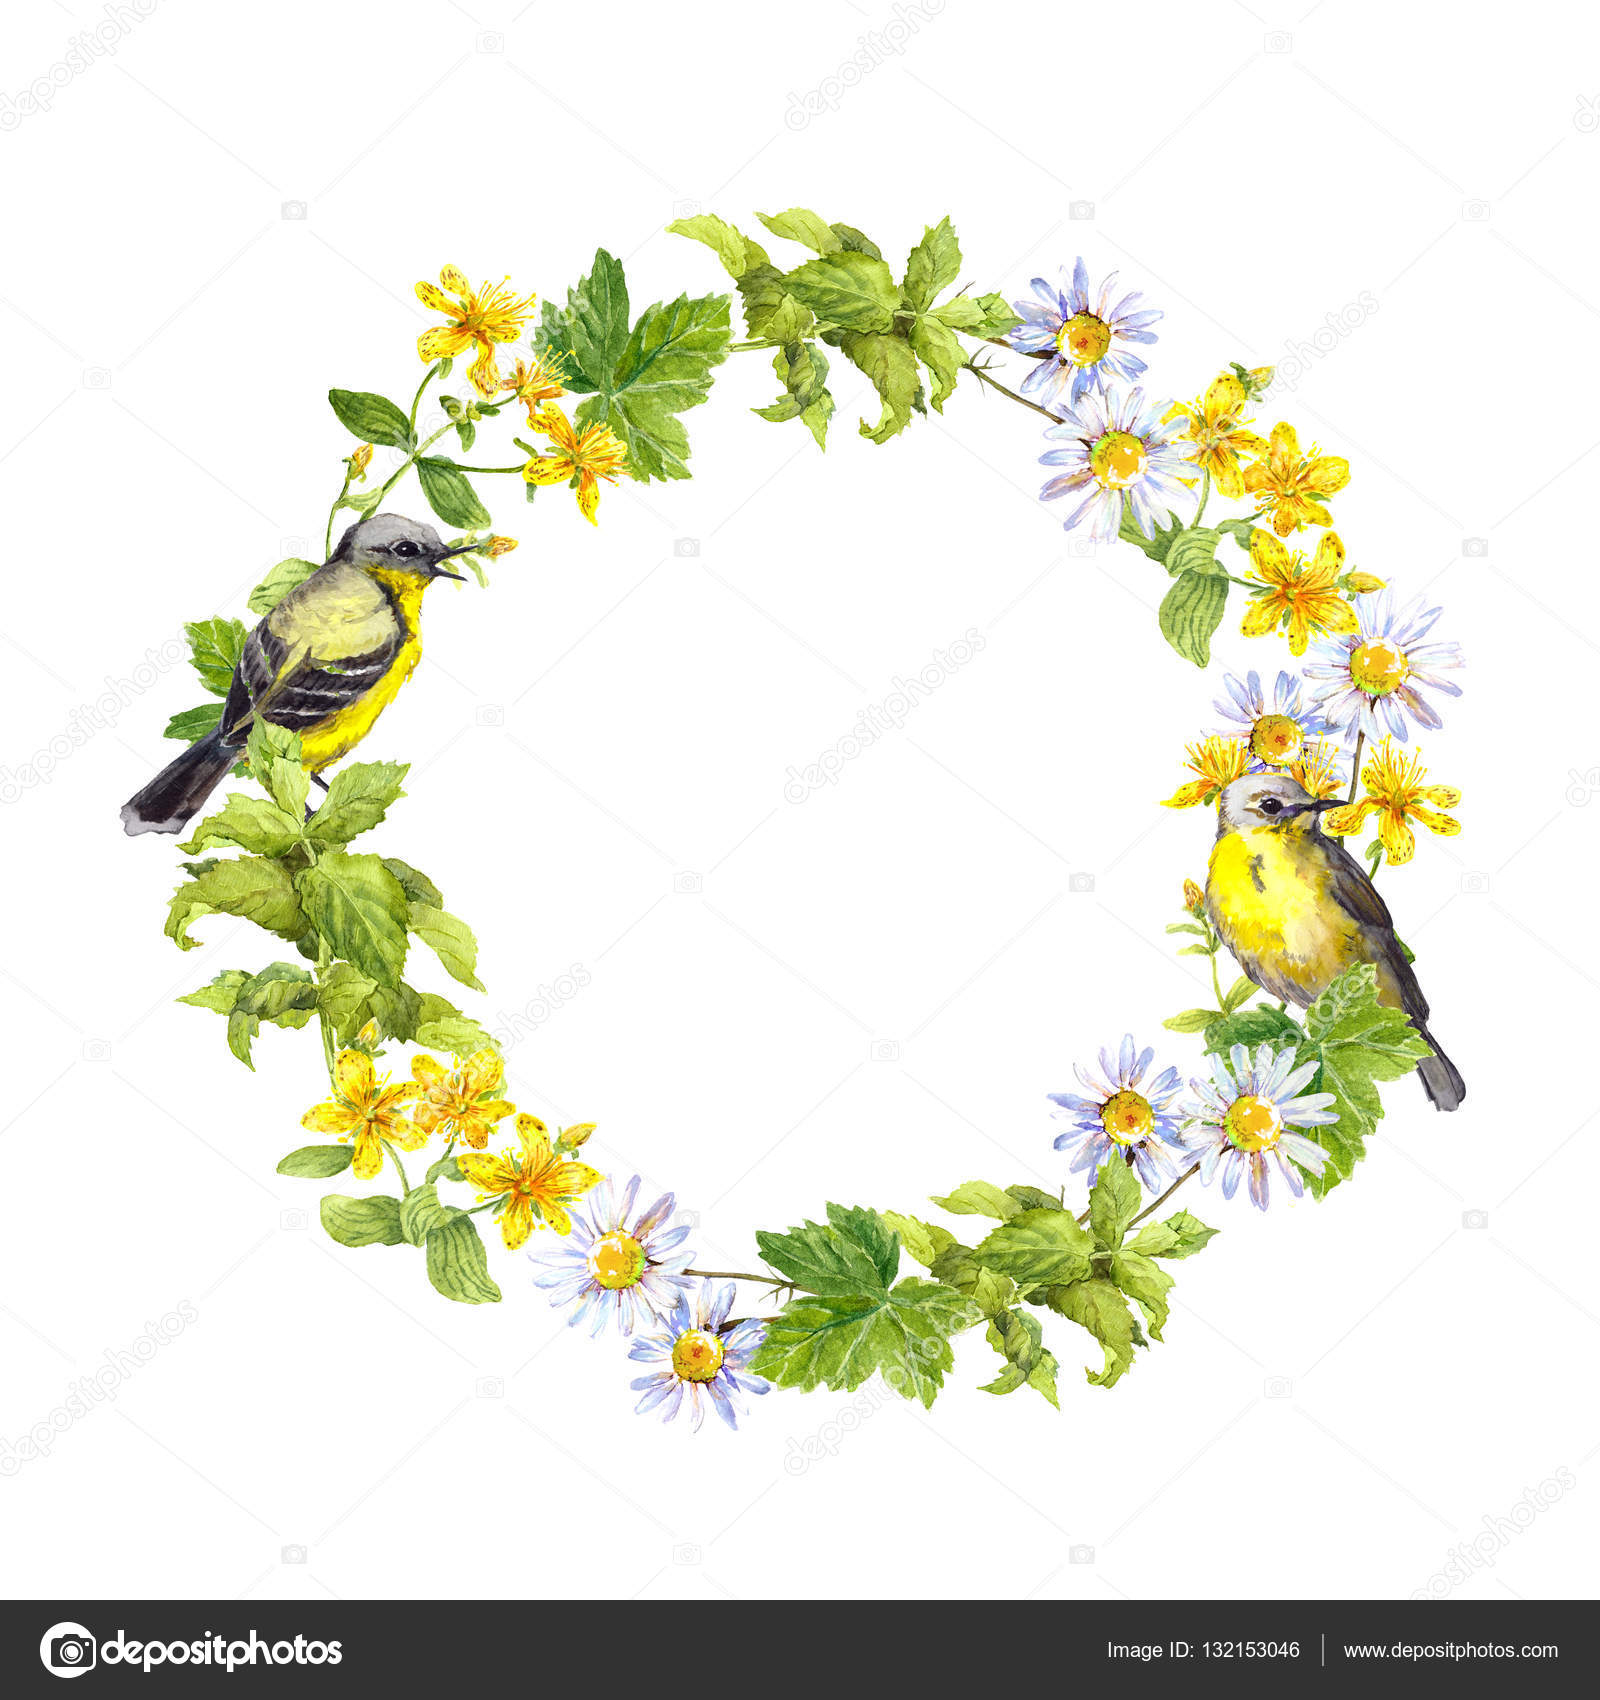 Spring Birds Flowers And Herbs Floral Vintage Wreath Retro Watercolor Photo By Zzzorikk